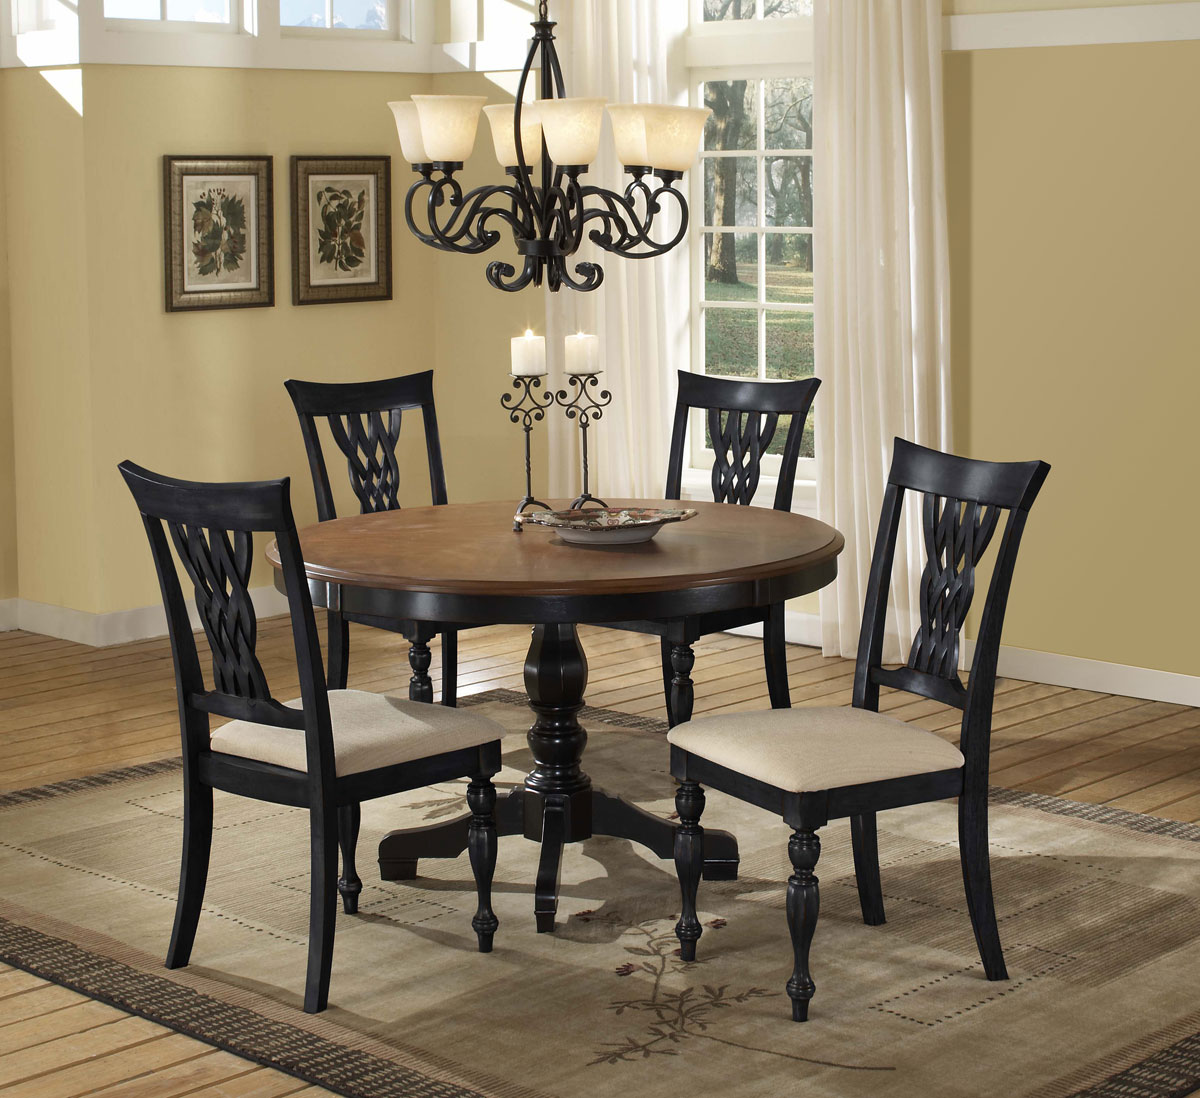 Hillsdale Embassy Round Pedestal Dining Table Rubbed Black - Round pedestal dining table set with leaf